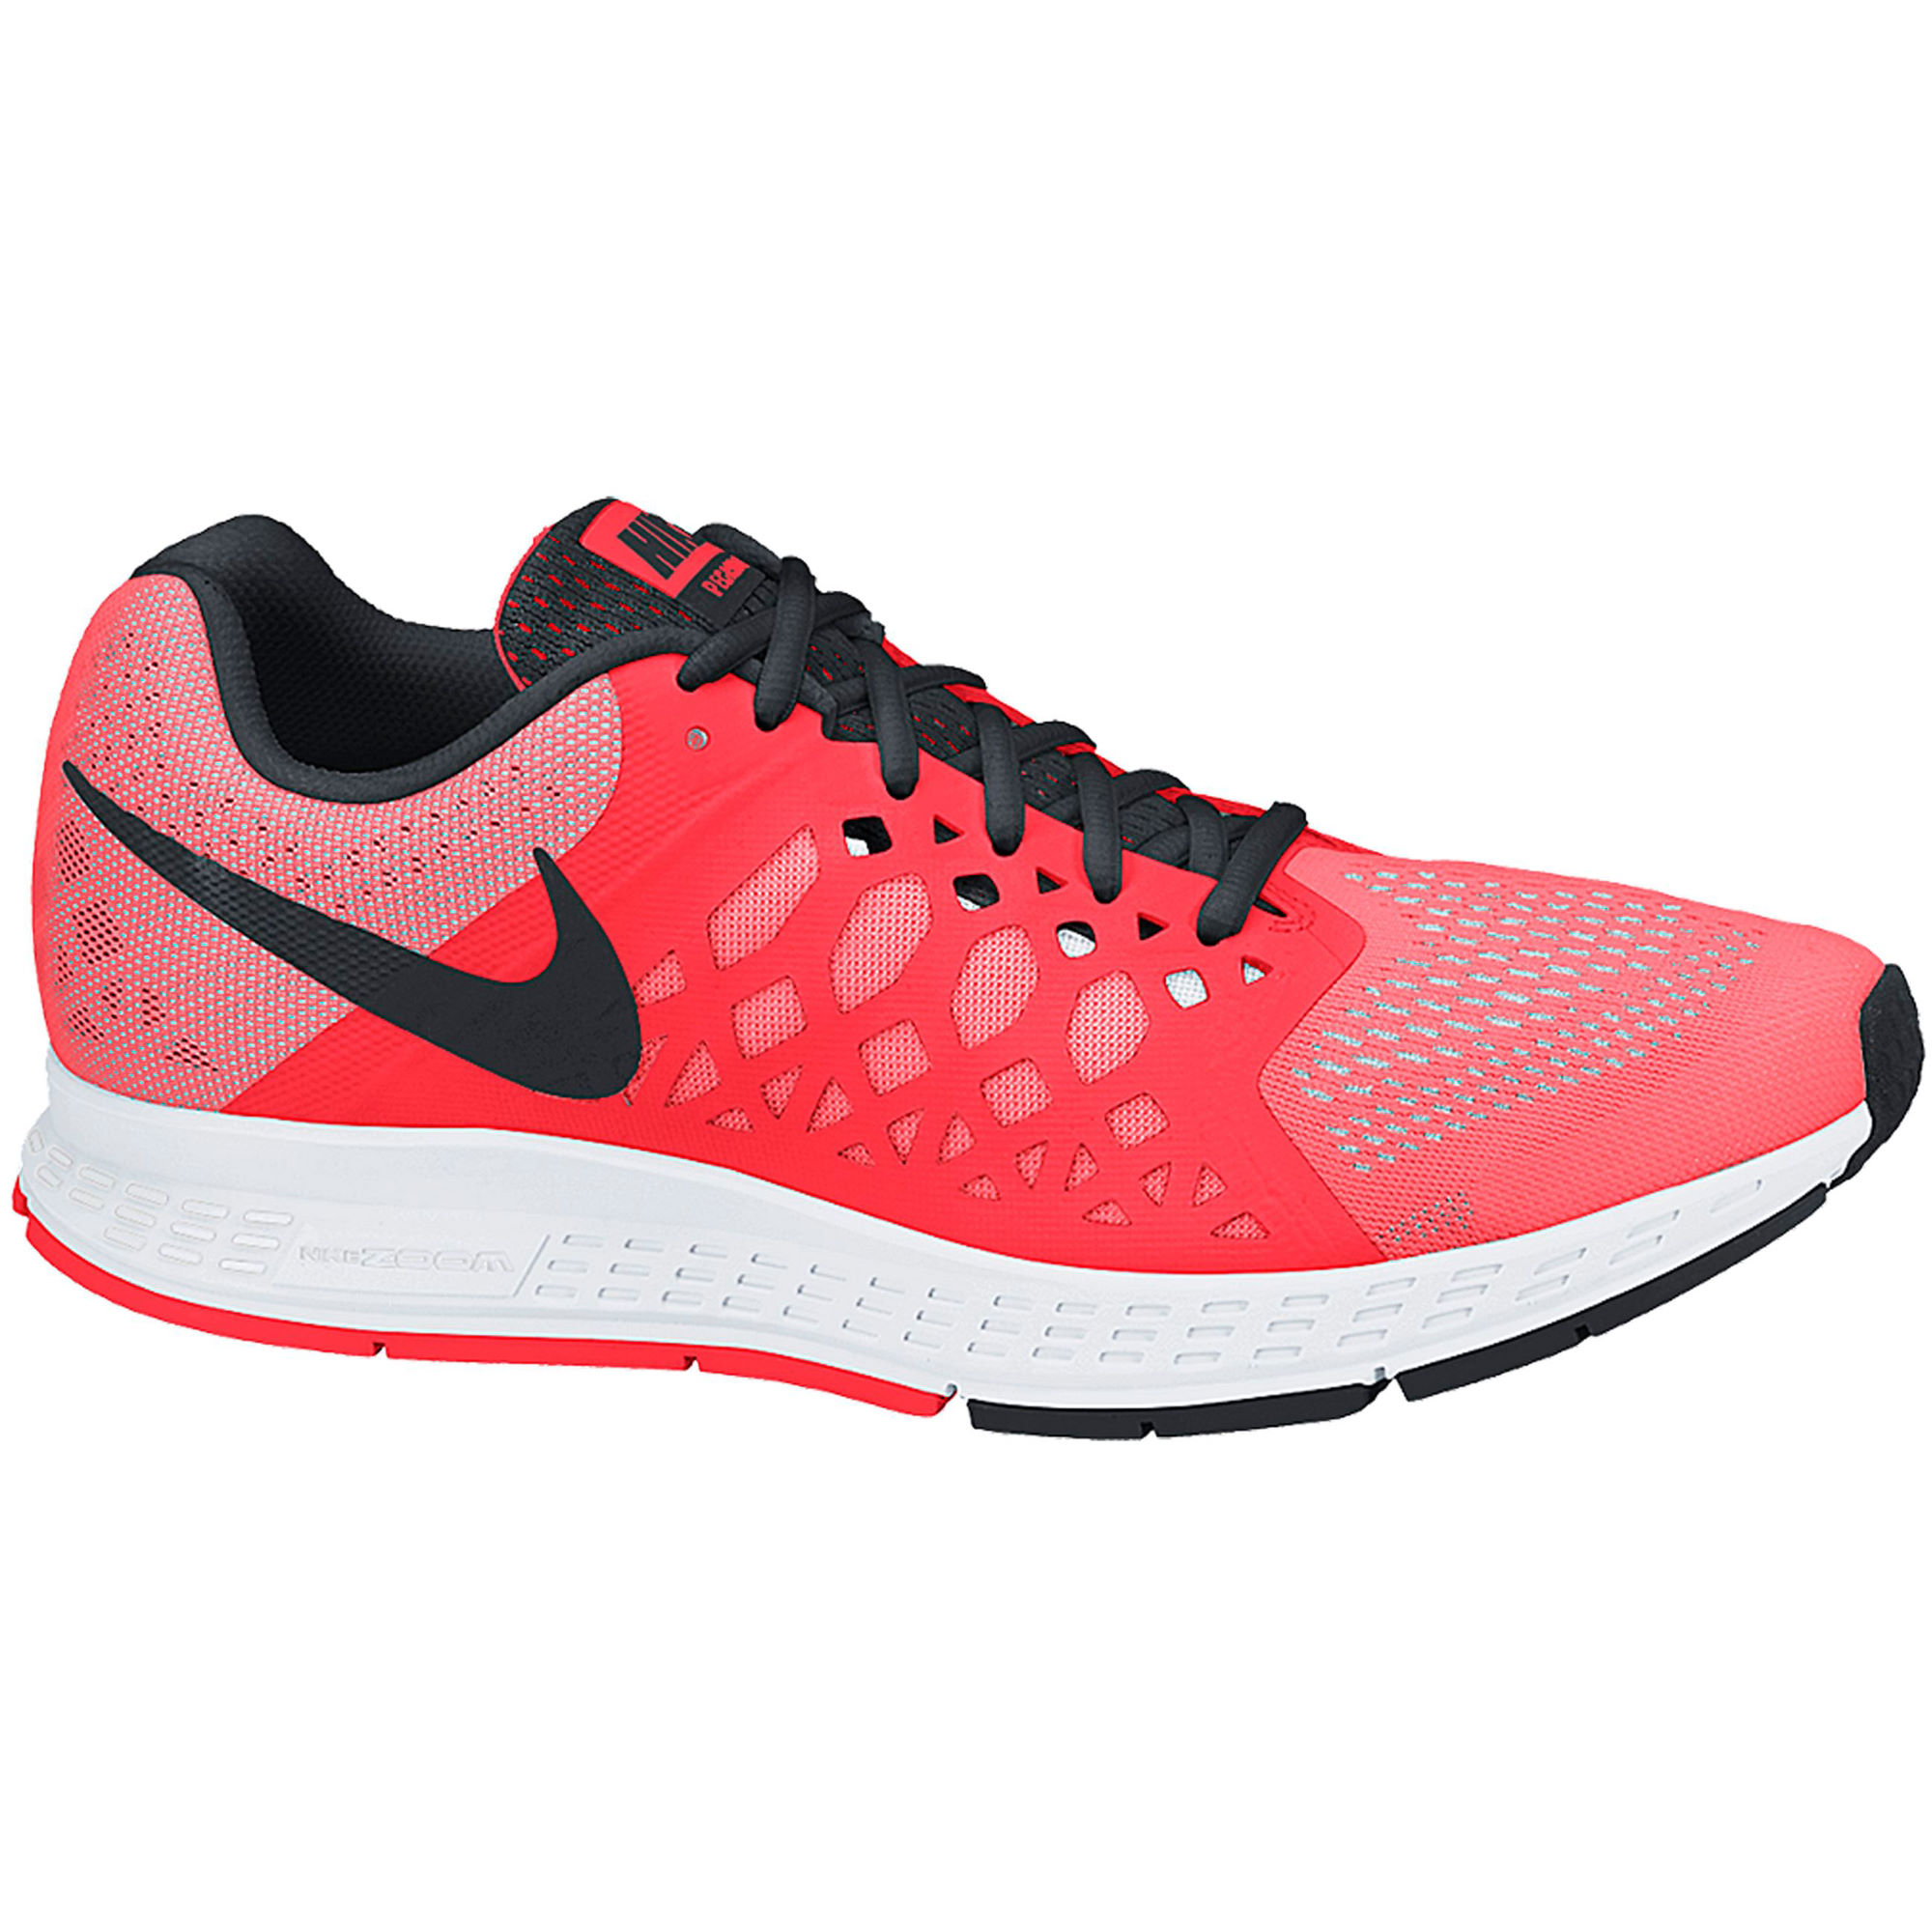 wiggle nike air zoom pegasus 31 shoes sp15 cushion. Black Bedroom Furniture Sets. Home Design Ideas